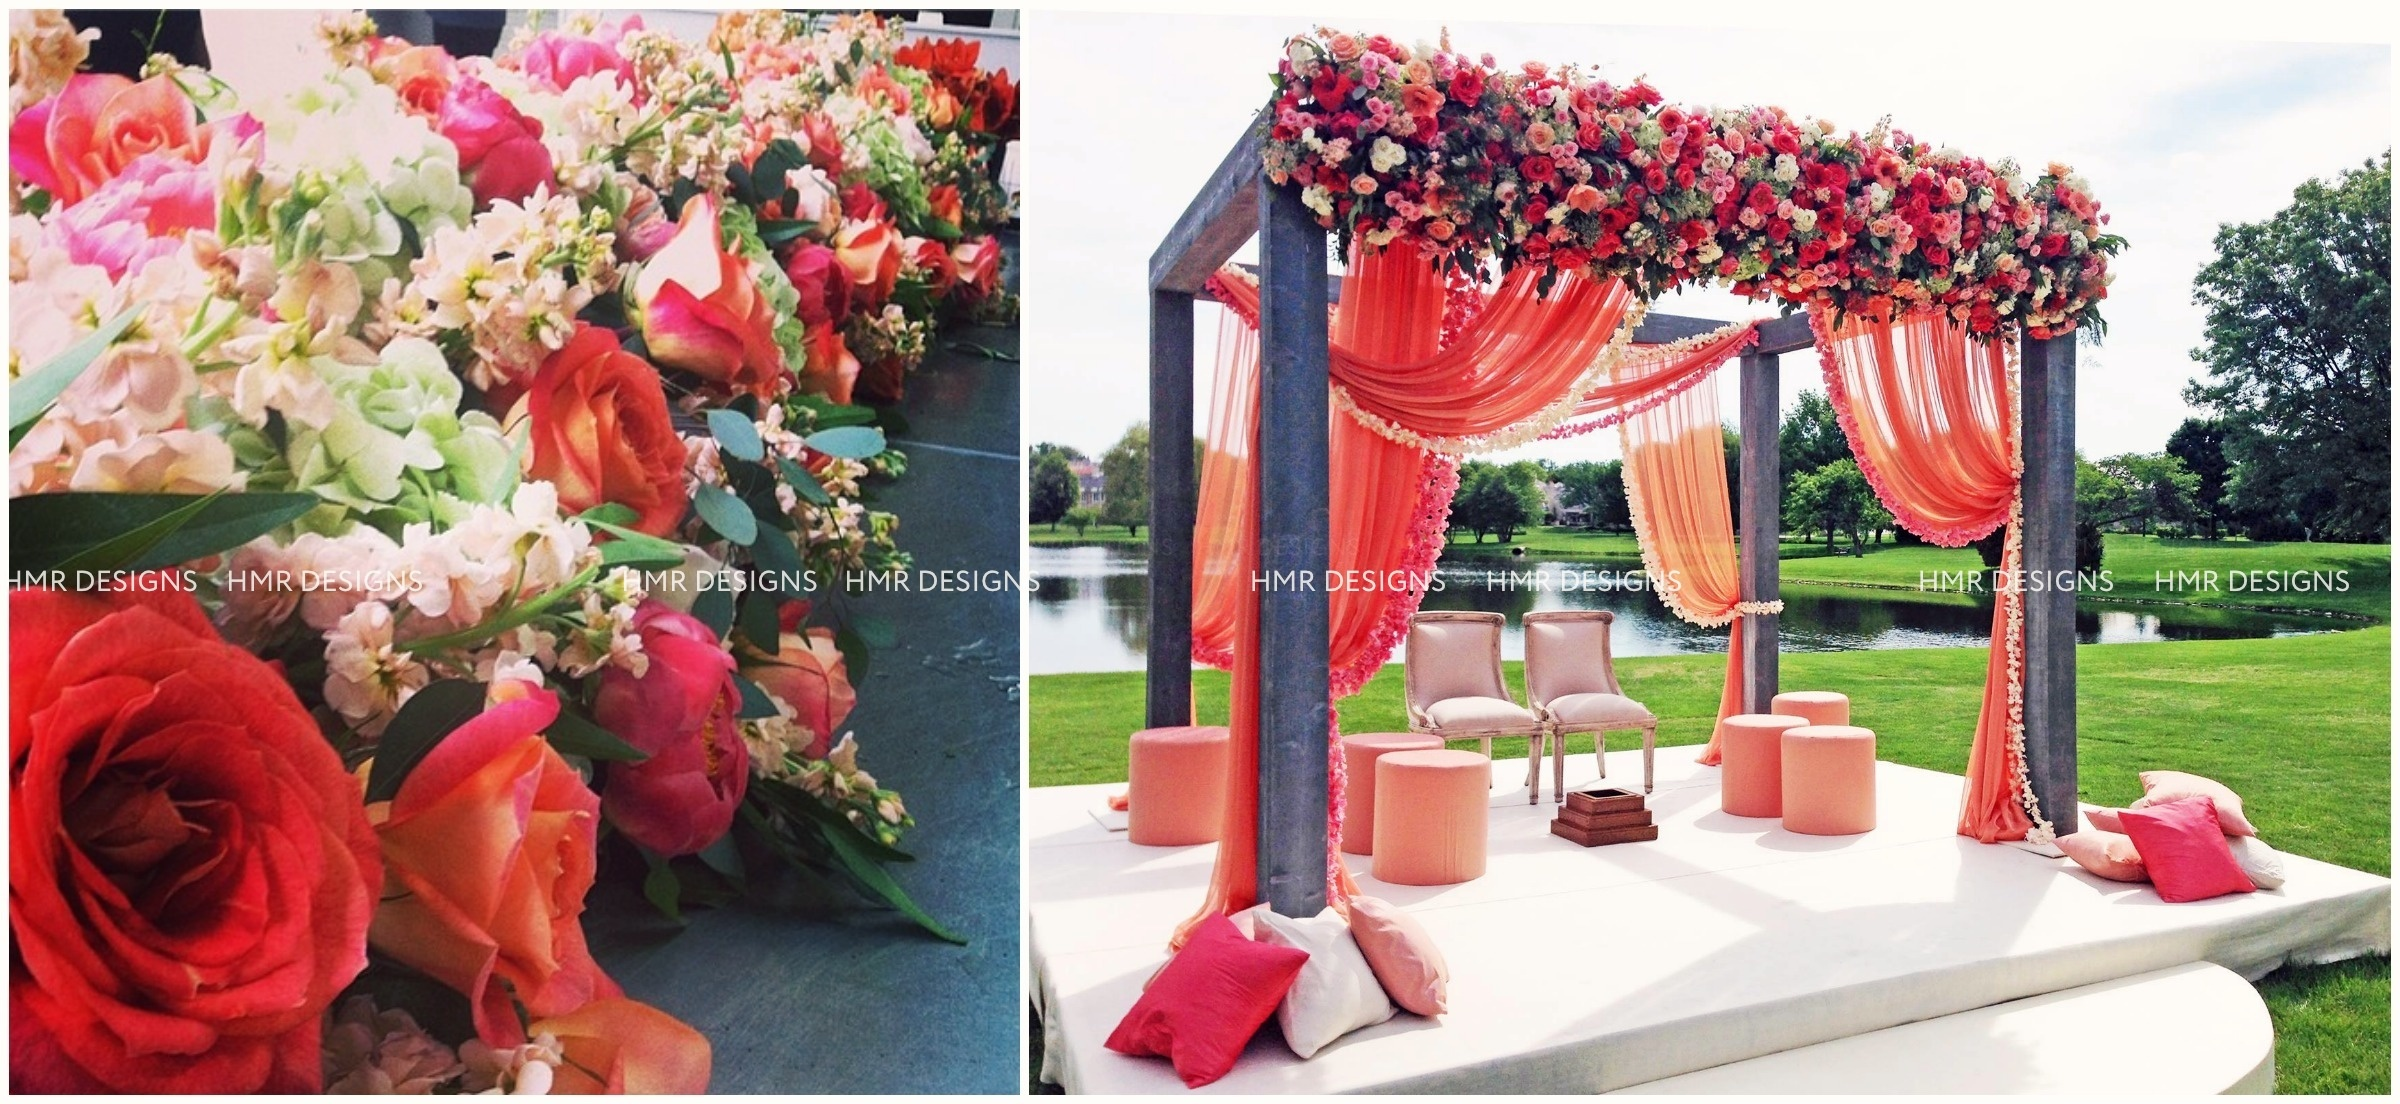 Stunning floral adorns a canopy at an outdoor wedding designed by HMR Designs